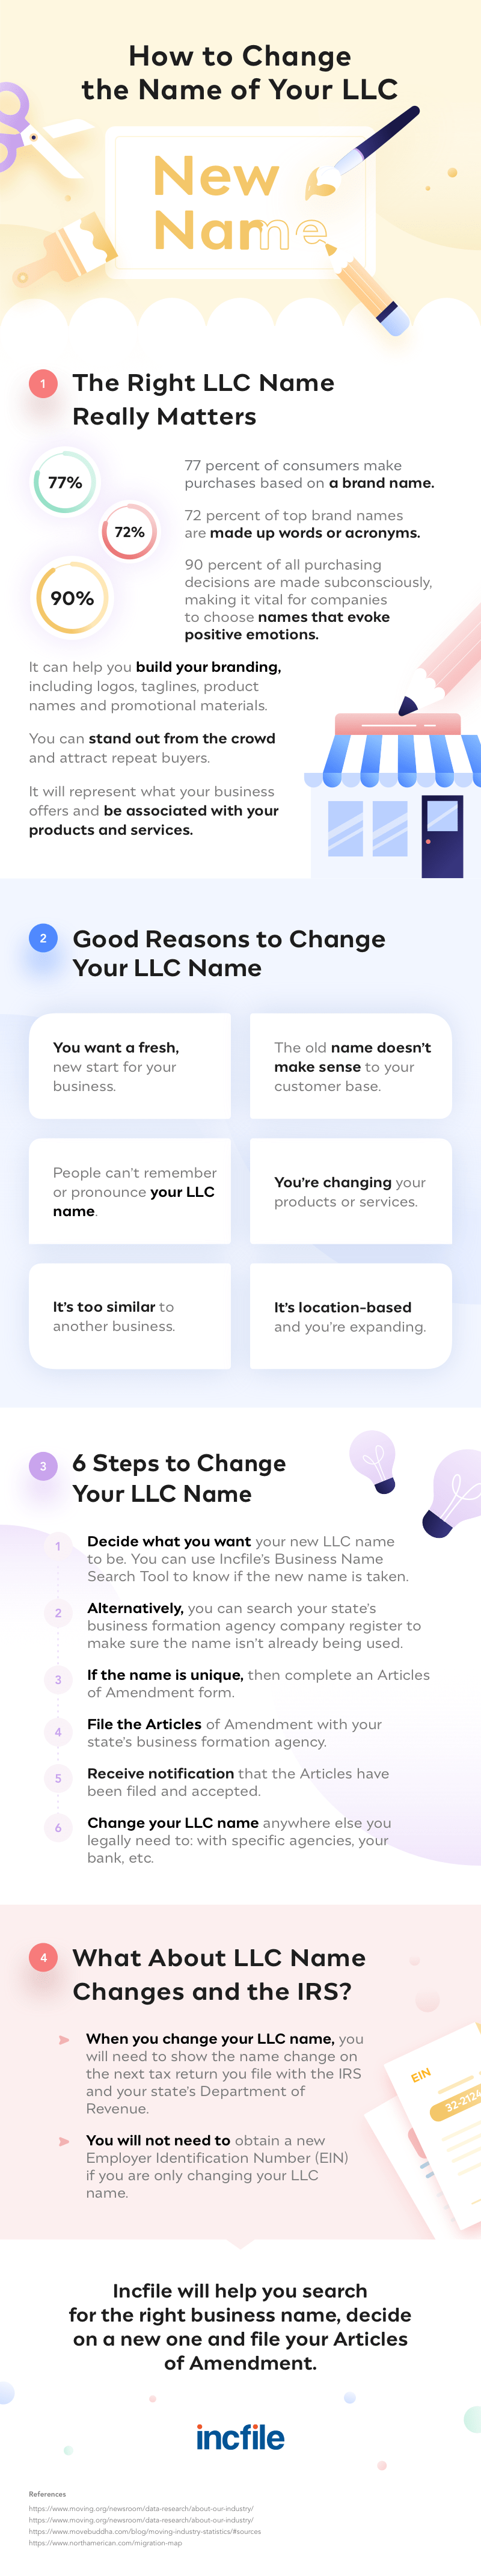 How to Change the Name of Your LLC Infographic